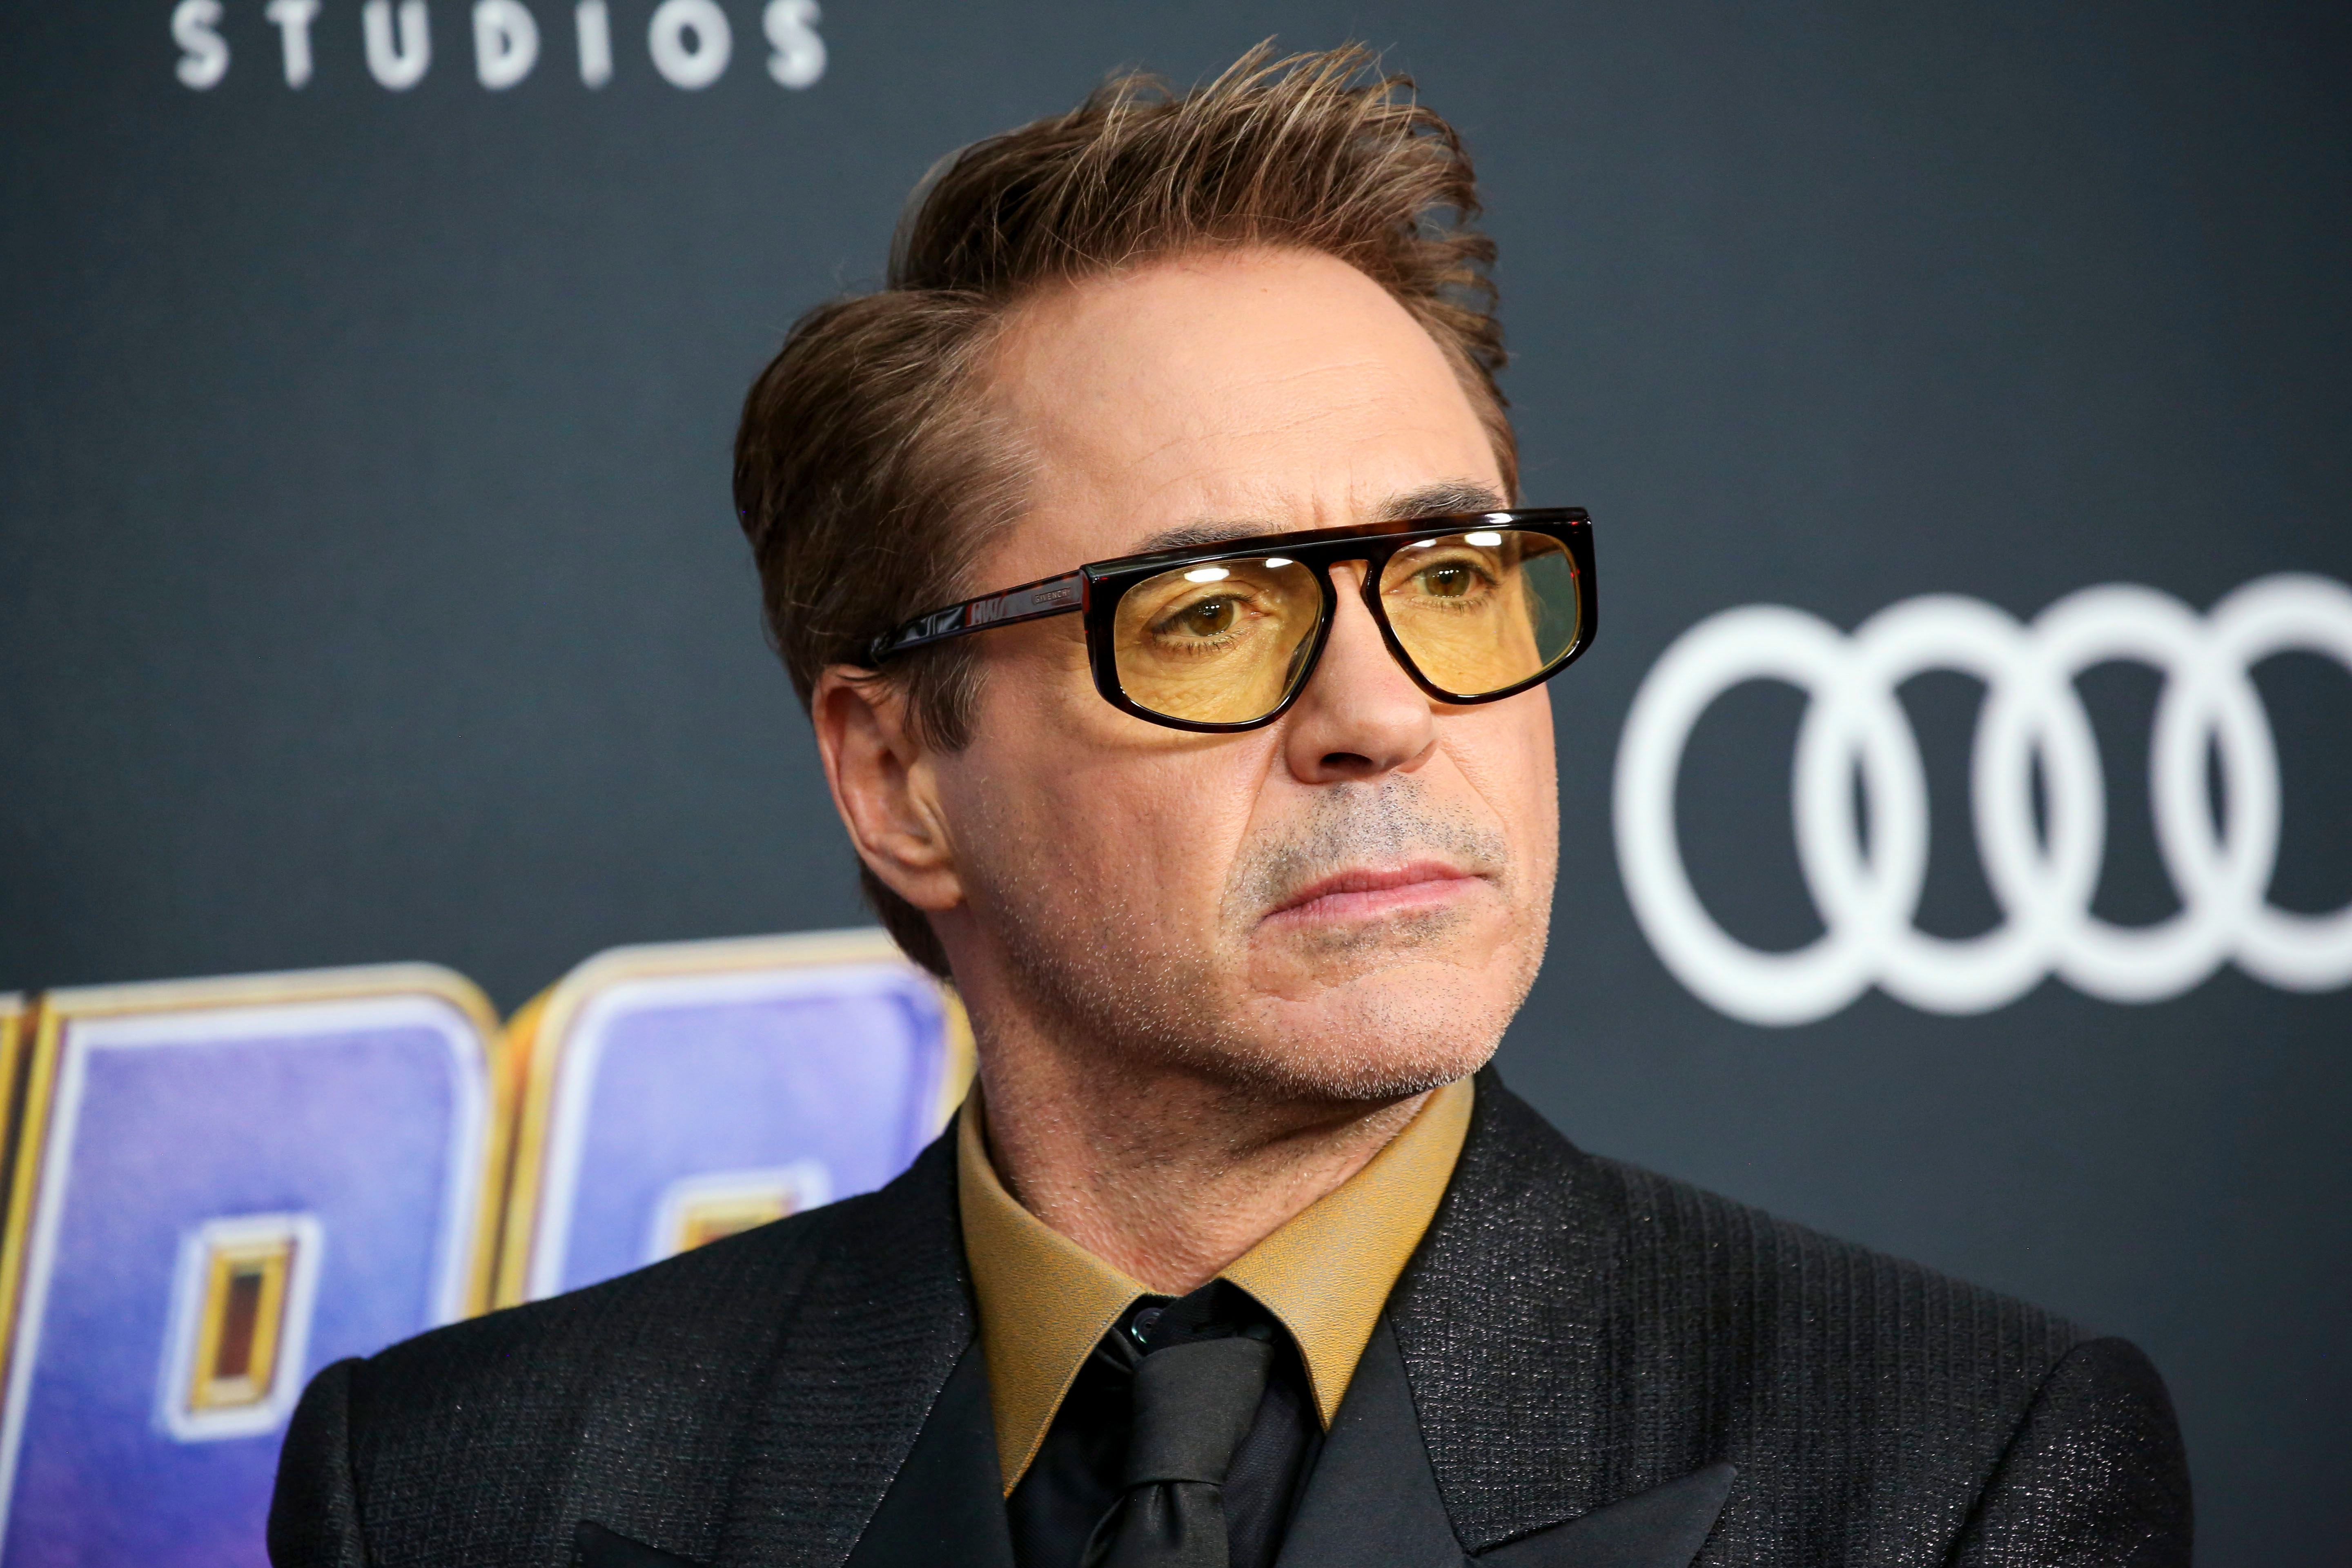 Robert Downey Jr. Jokes About His First Disneyland Experience: Being Detained for Pot